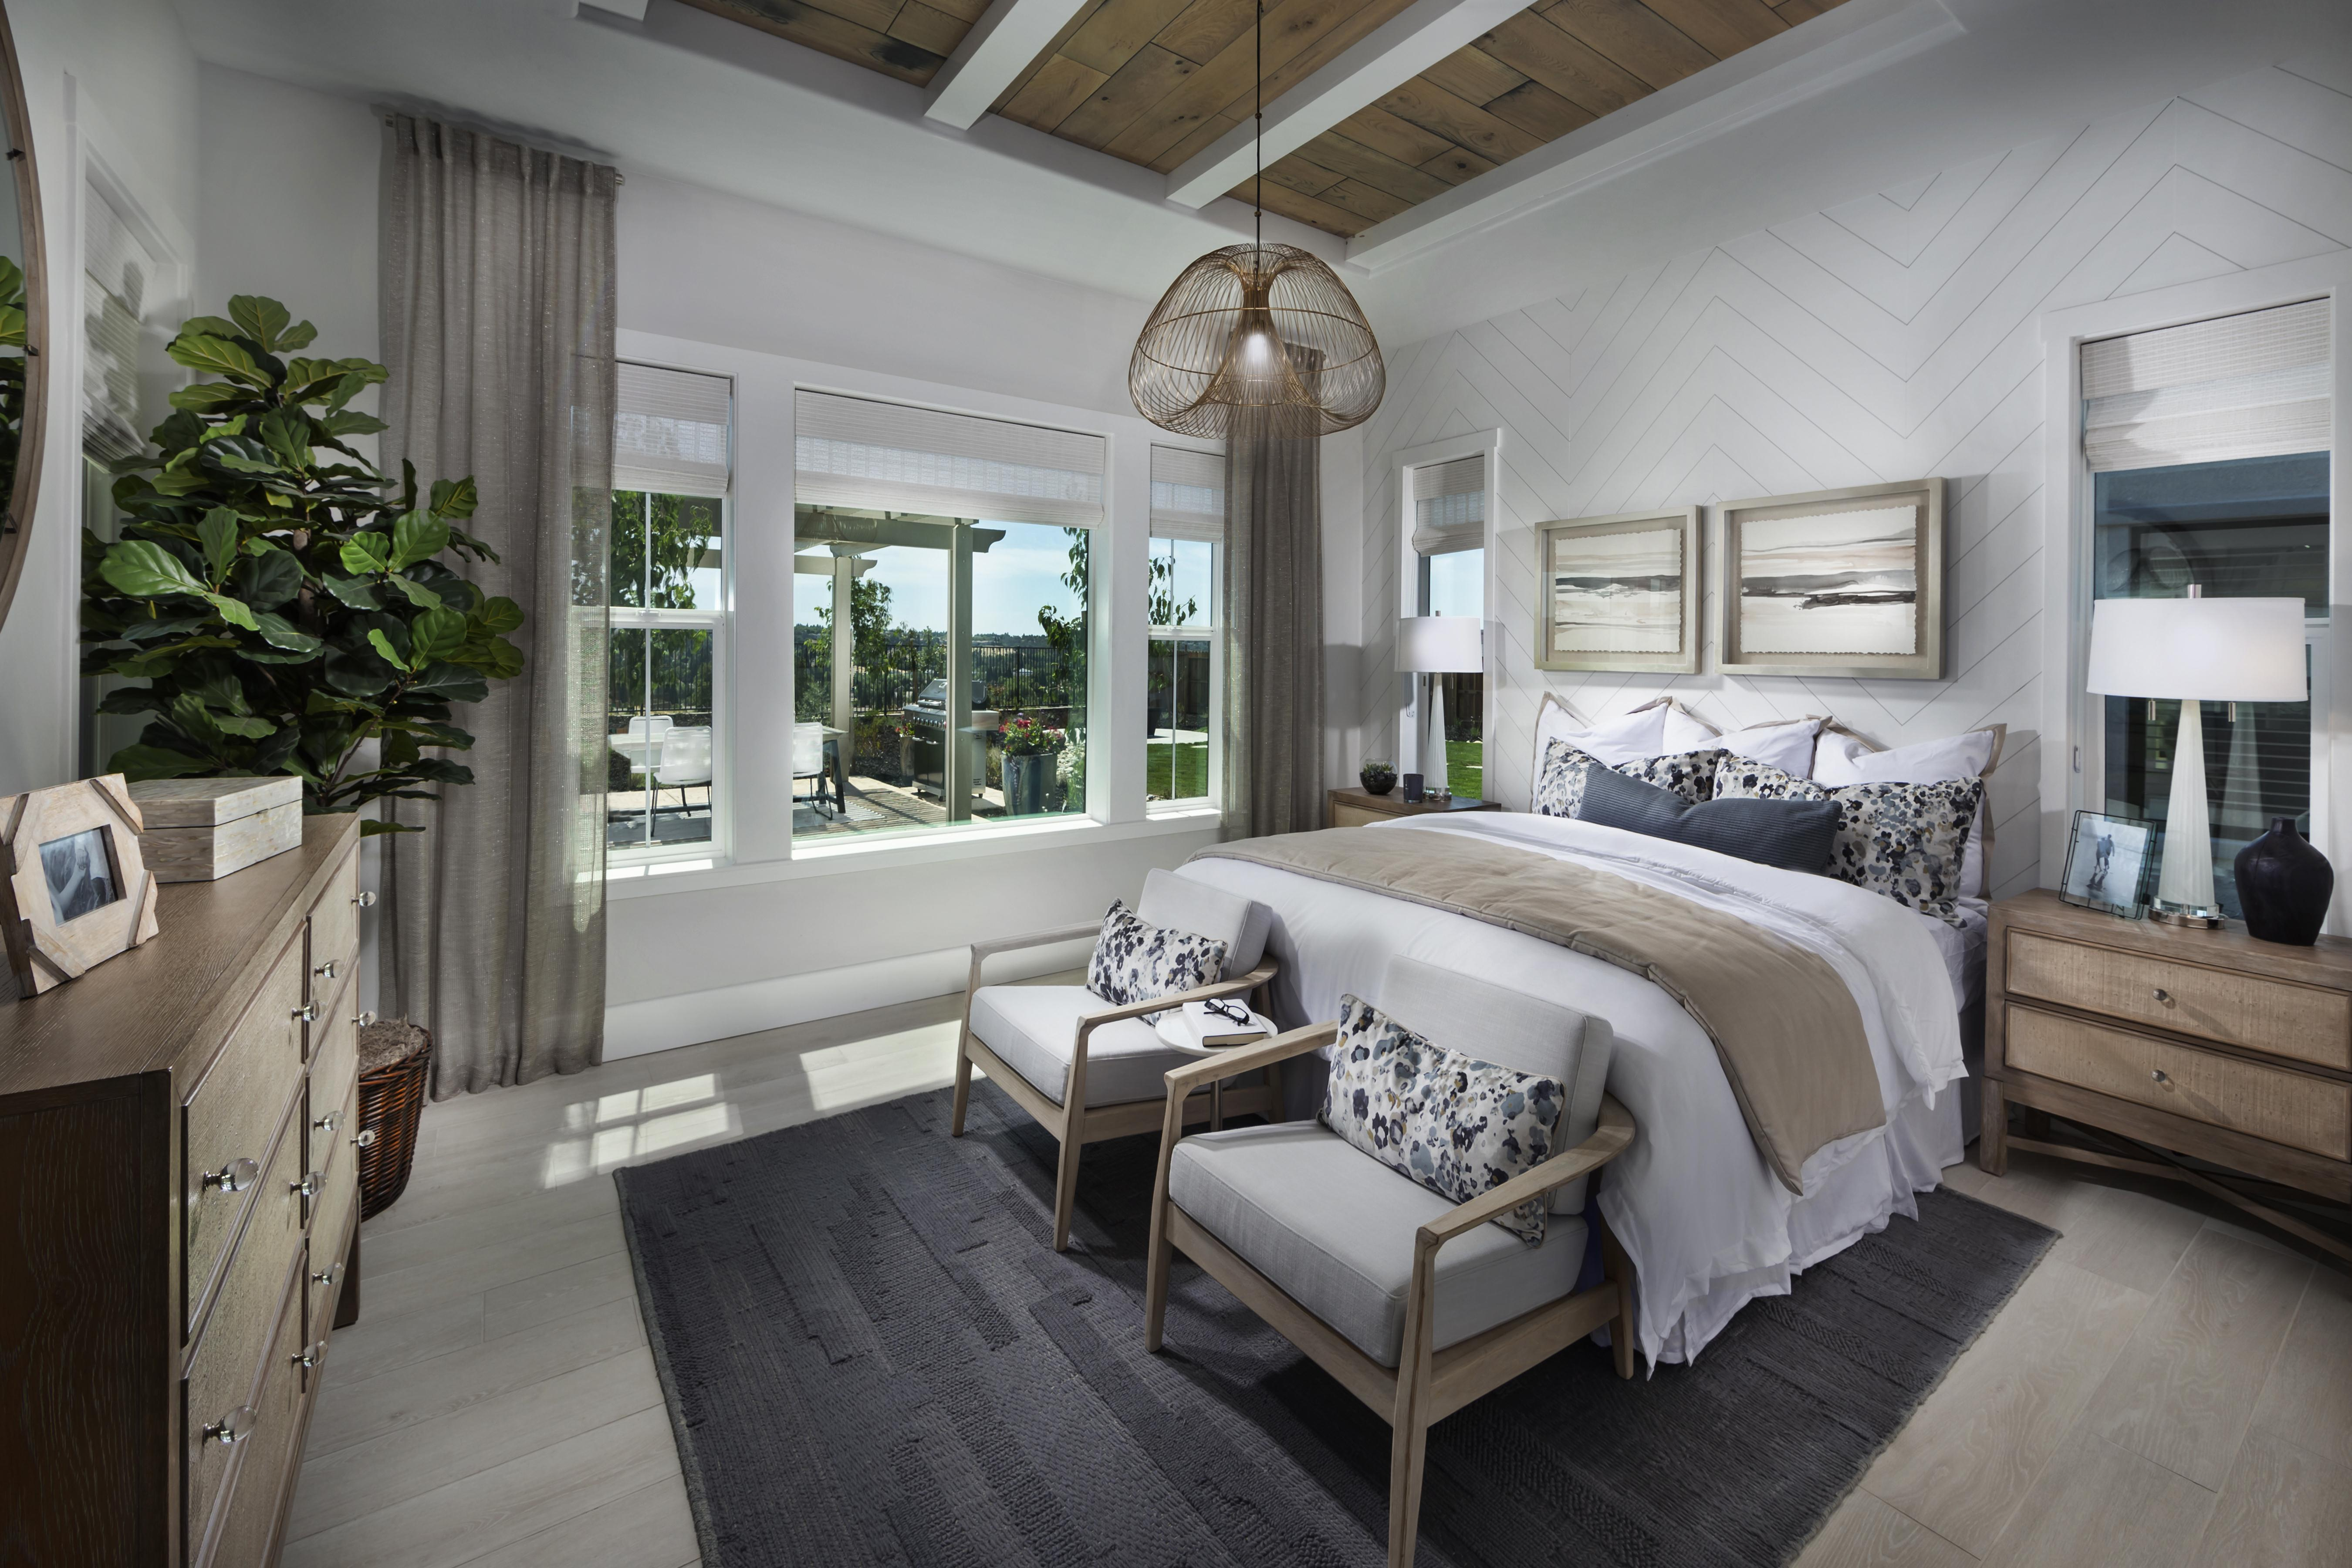 Bedroom featured in the Residence One-X By Tim Lewis Communities in Sacramento, CA